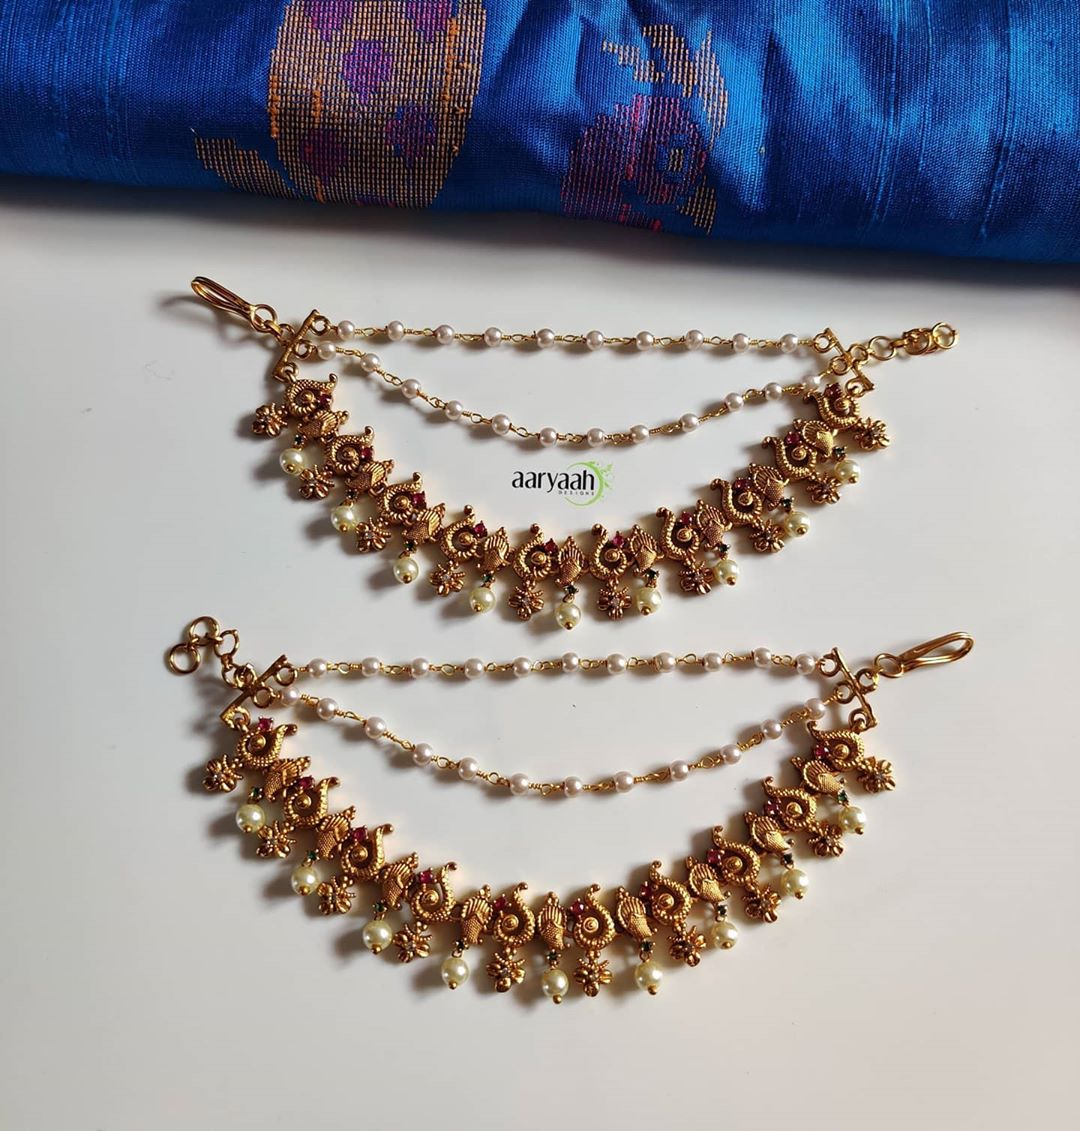 matte-gold-alike-layered earchains